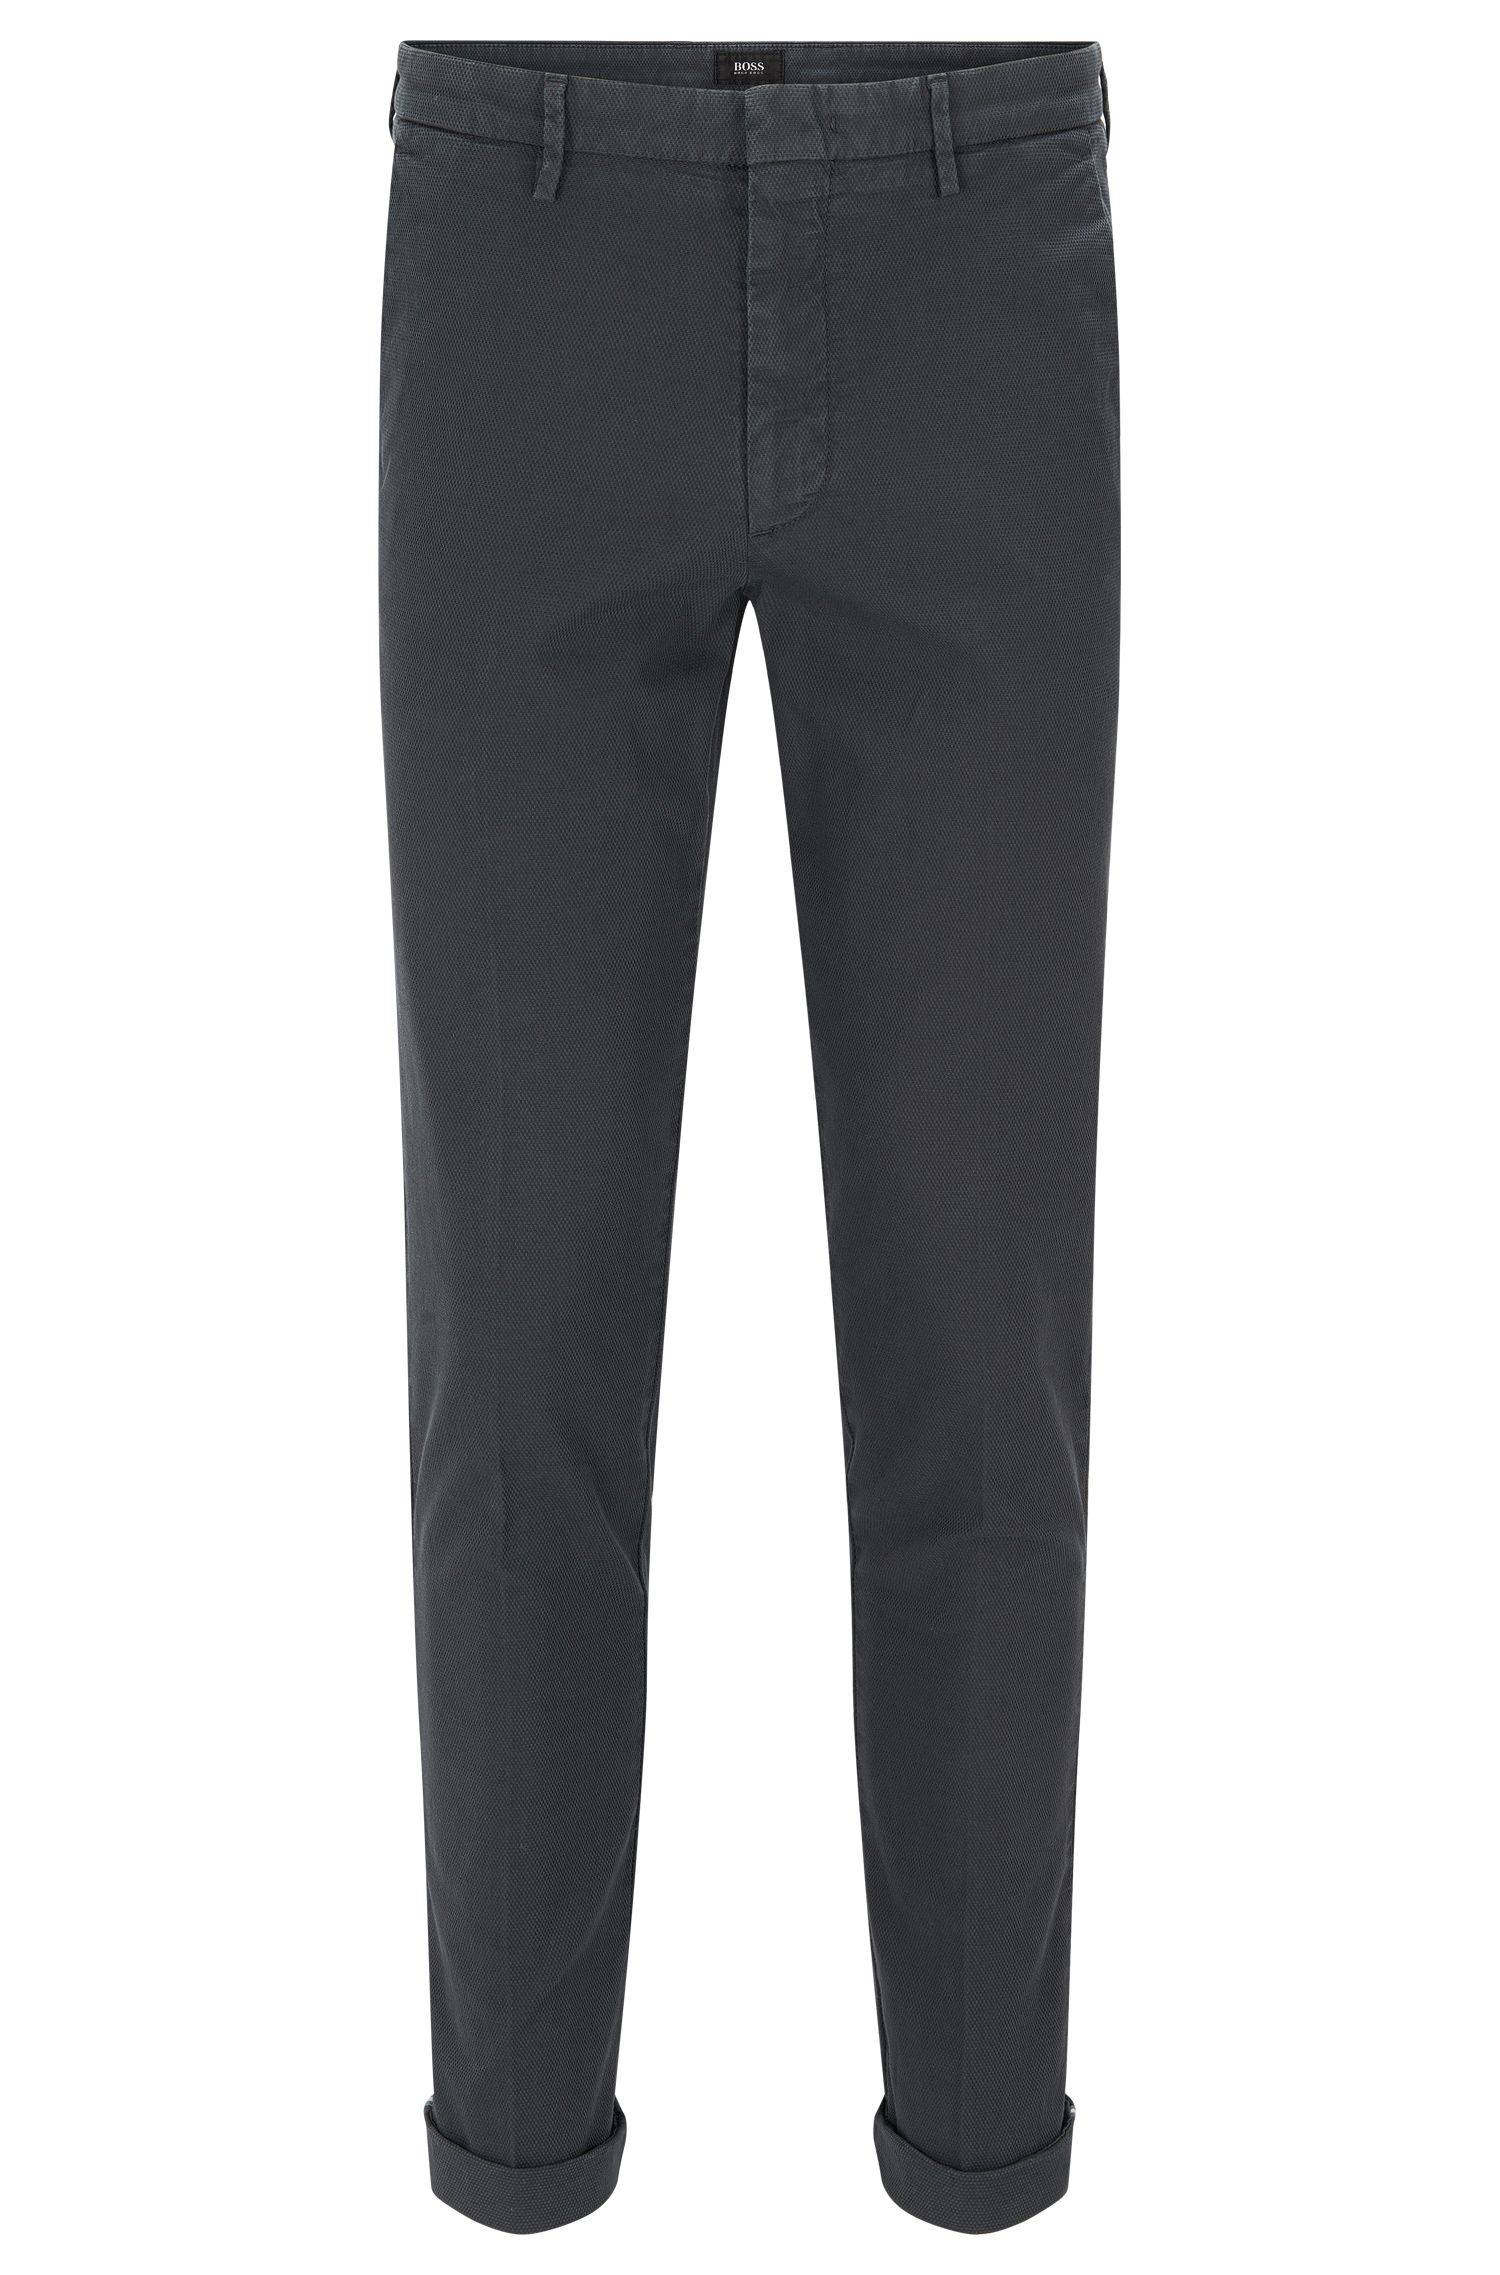 'Kaito W' | Slim Fit, Garment-Dyed Stretch Cotton Chino Pants